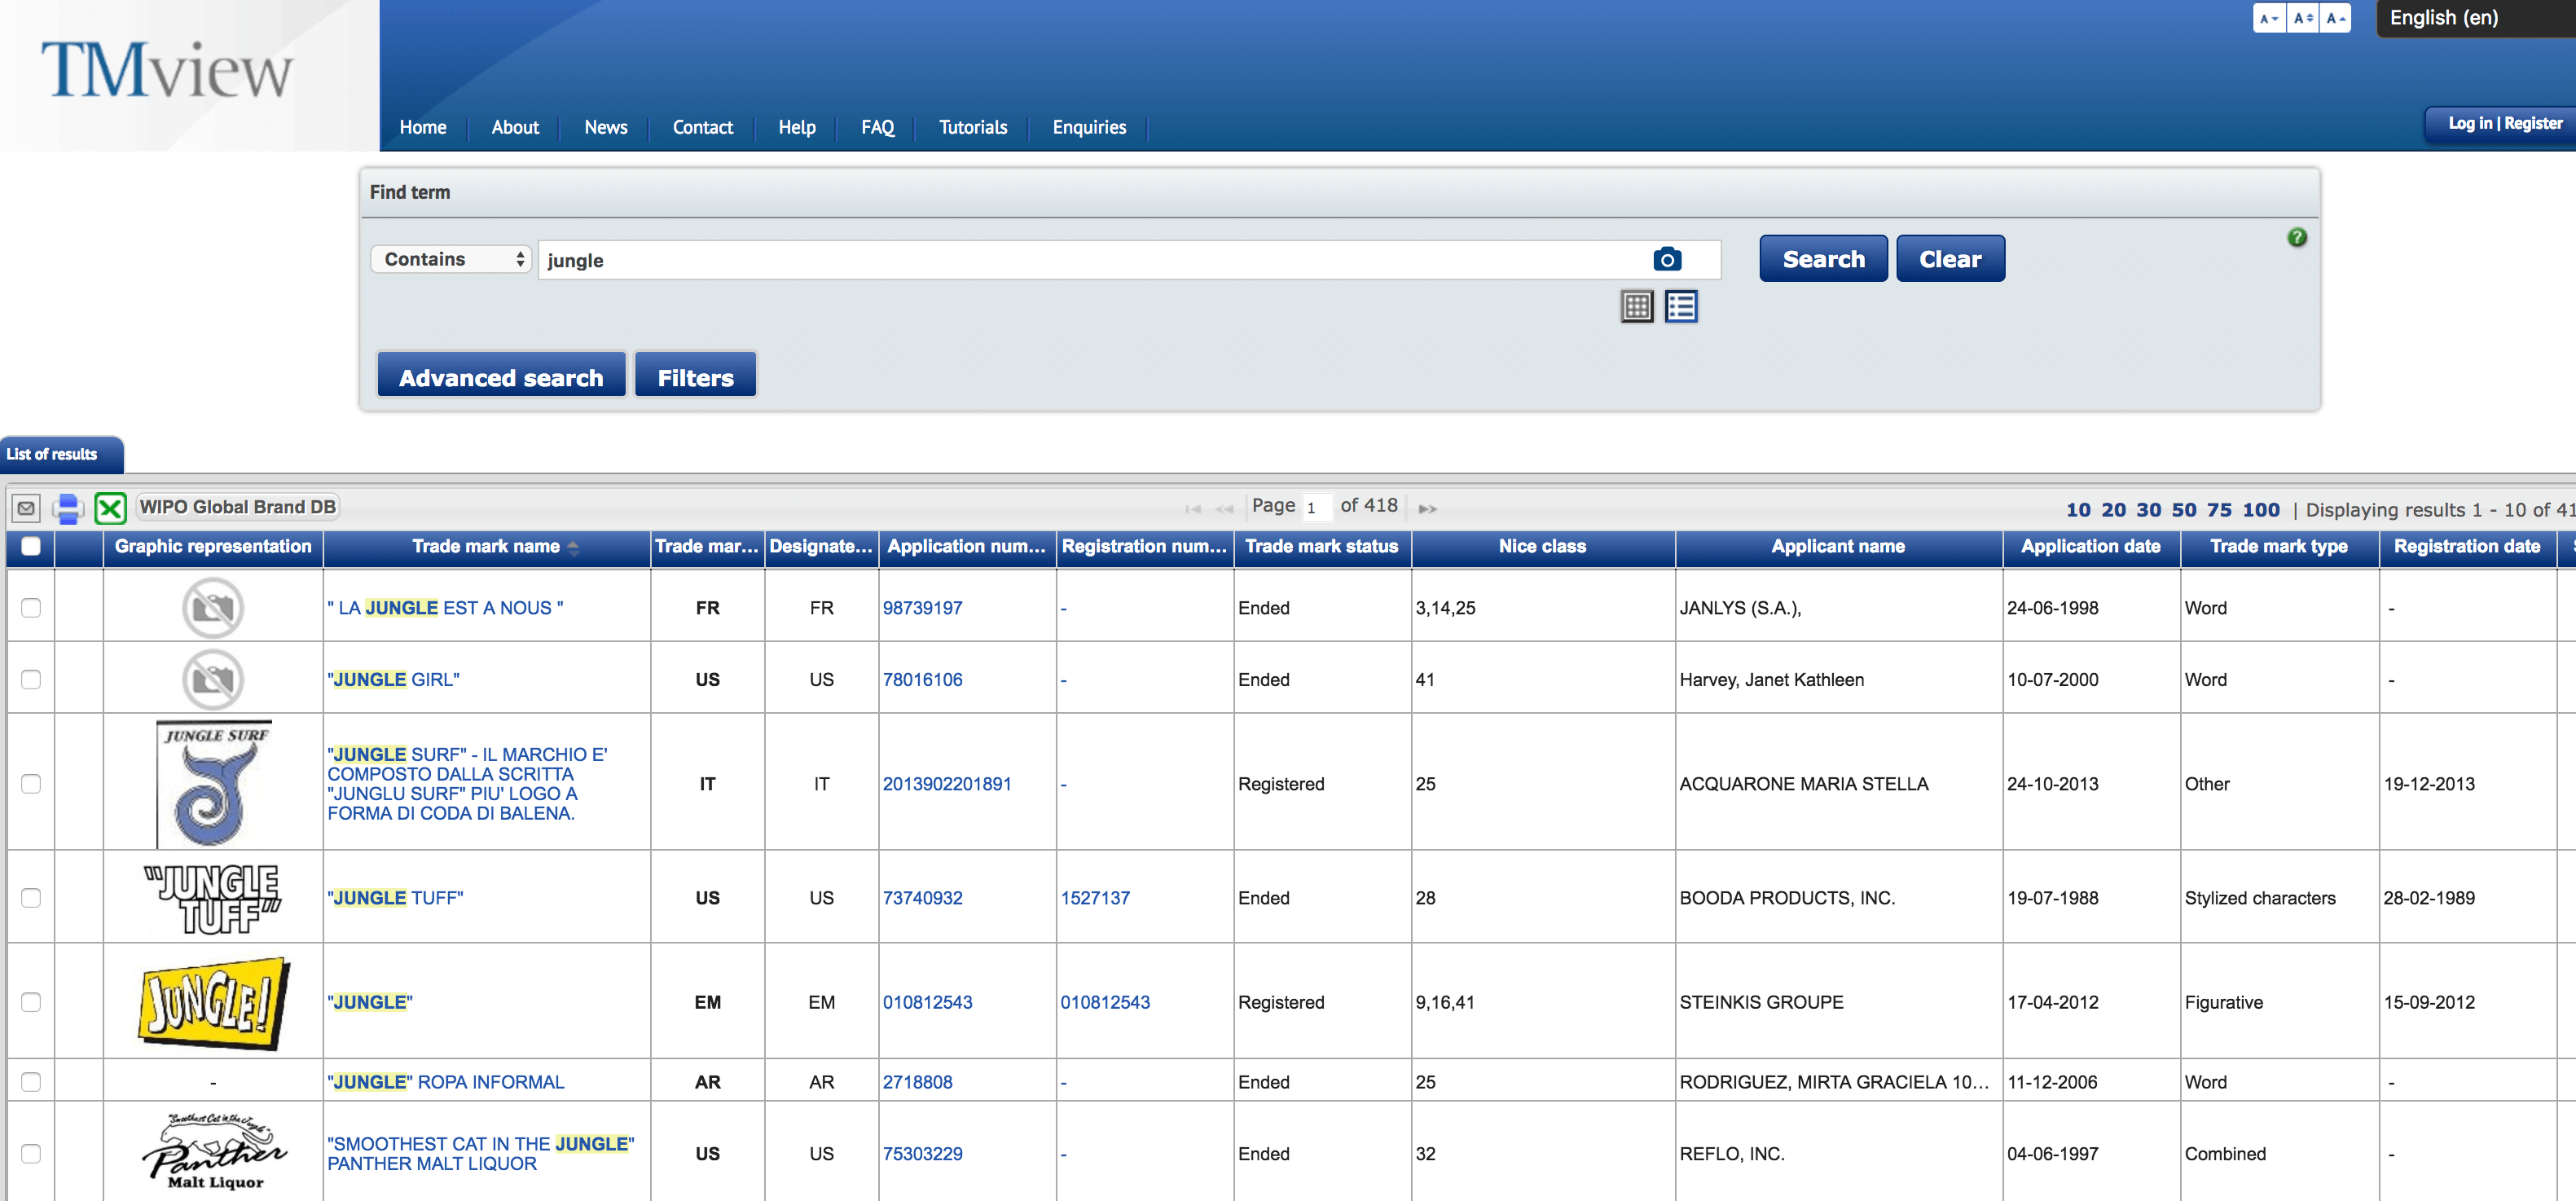 TMview trademark search engine